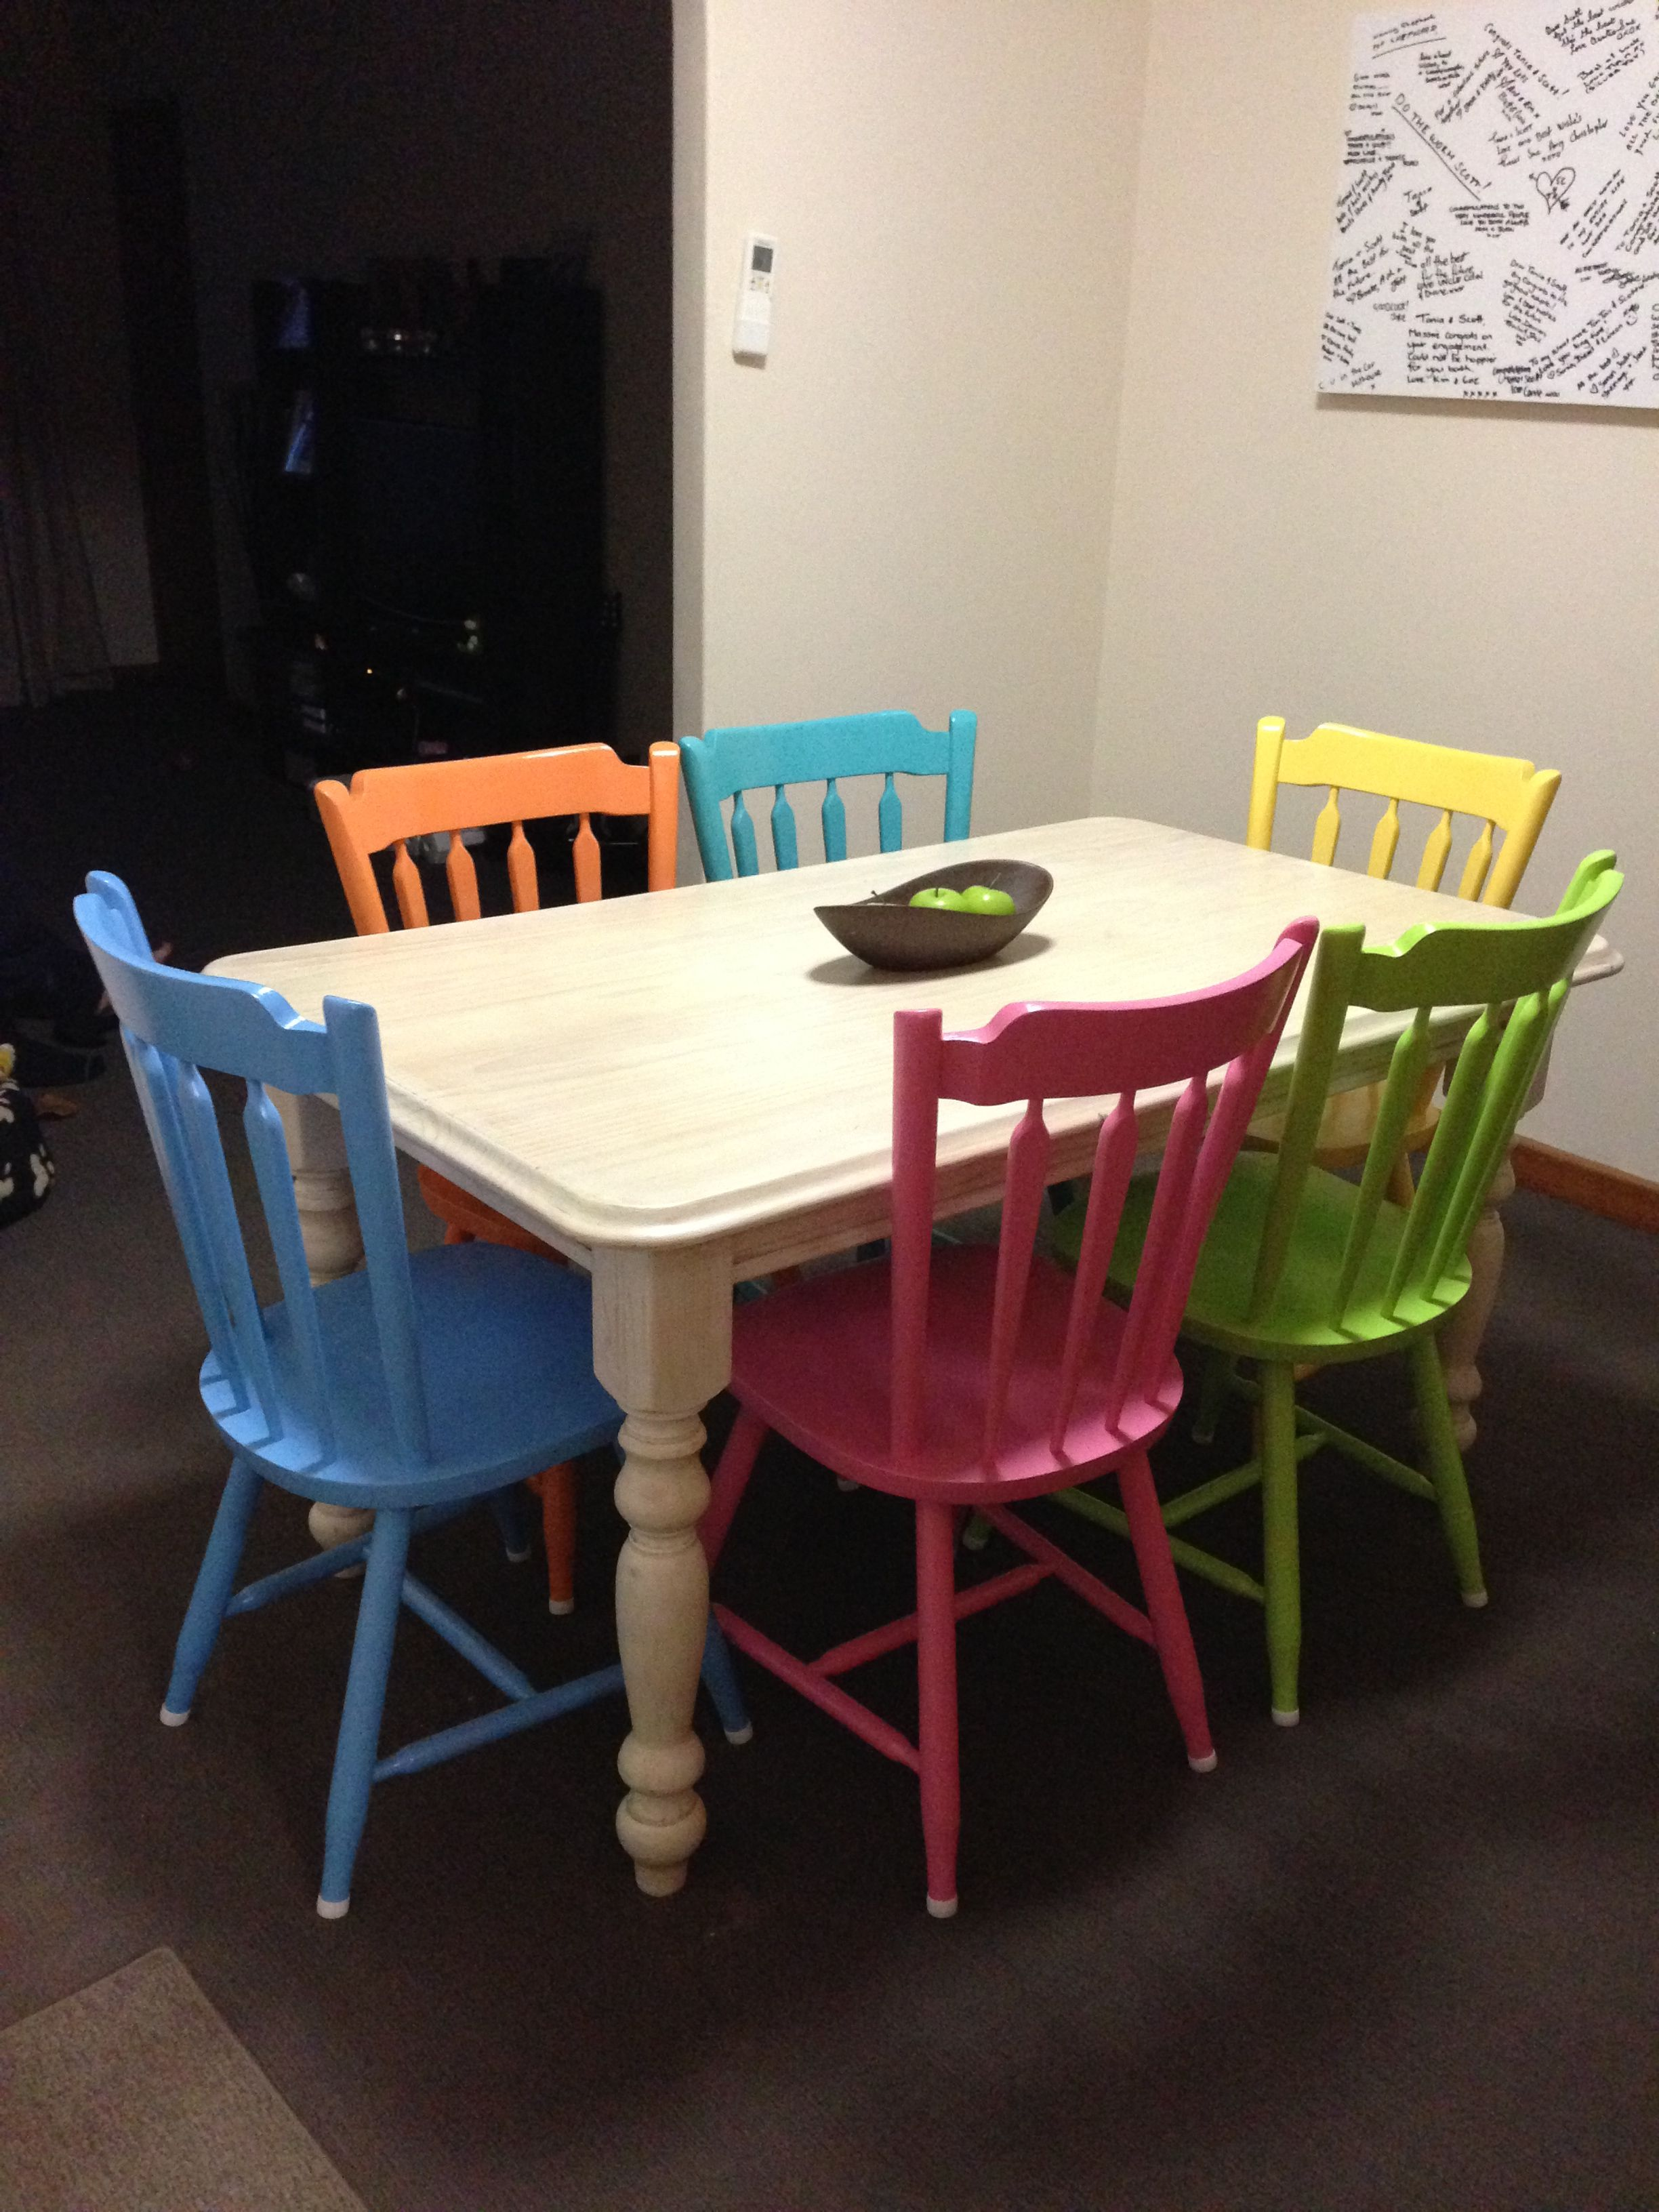 My Freshly Painted Dining Table With Different Coloured